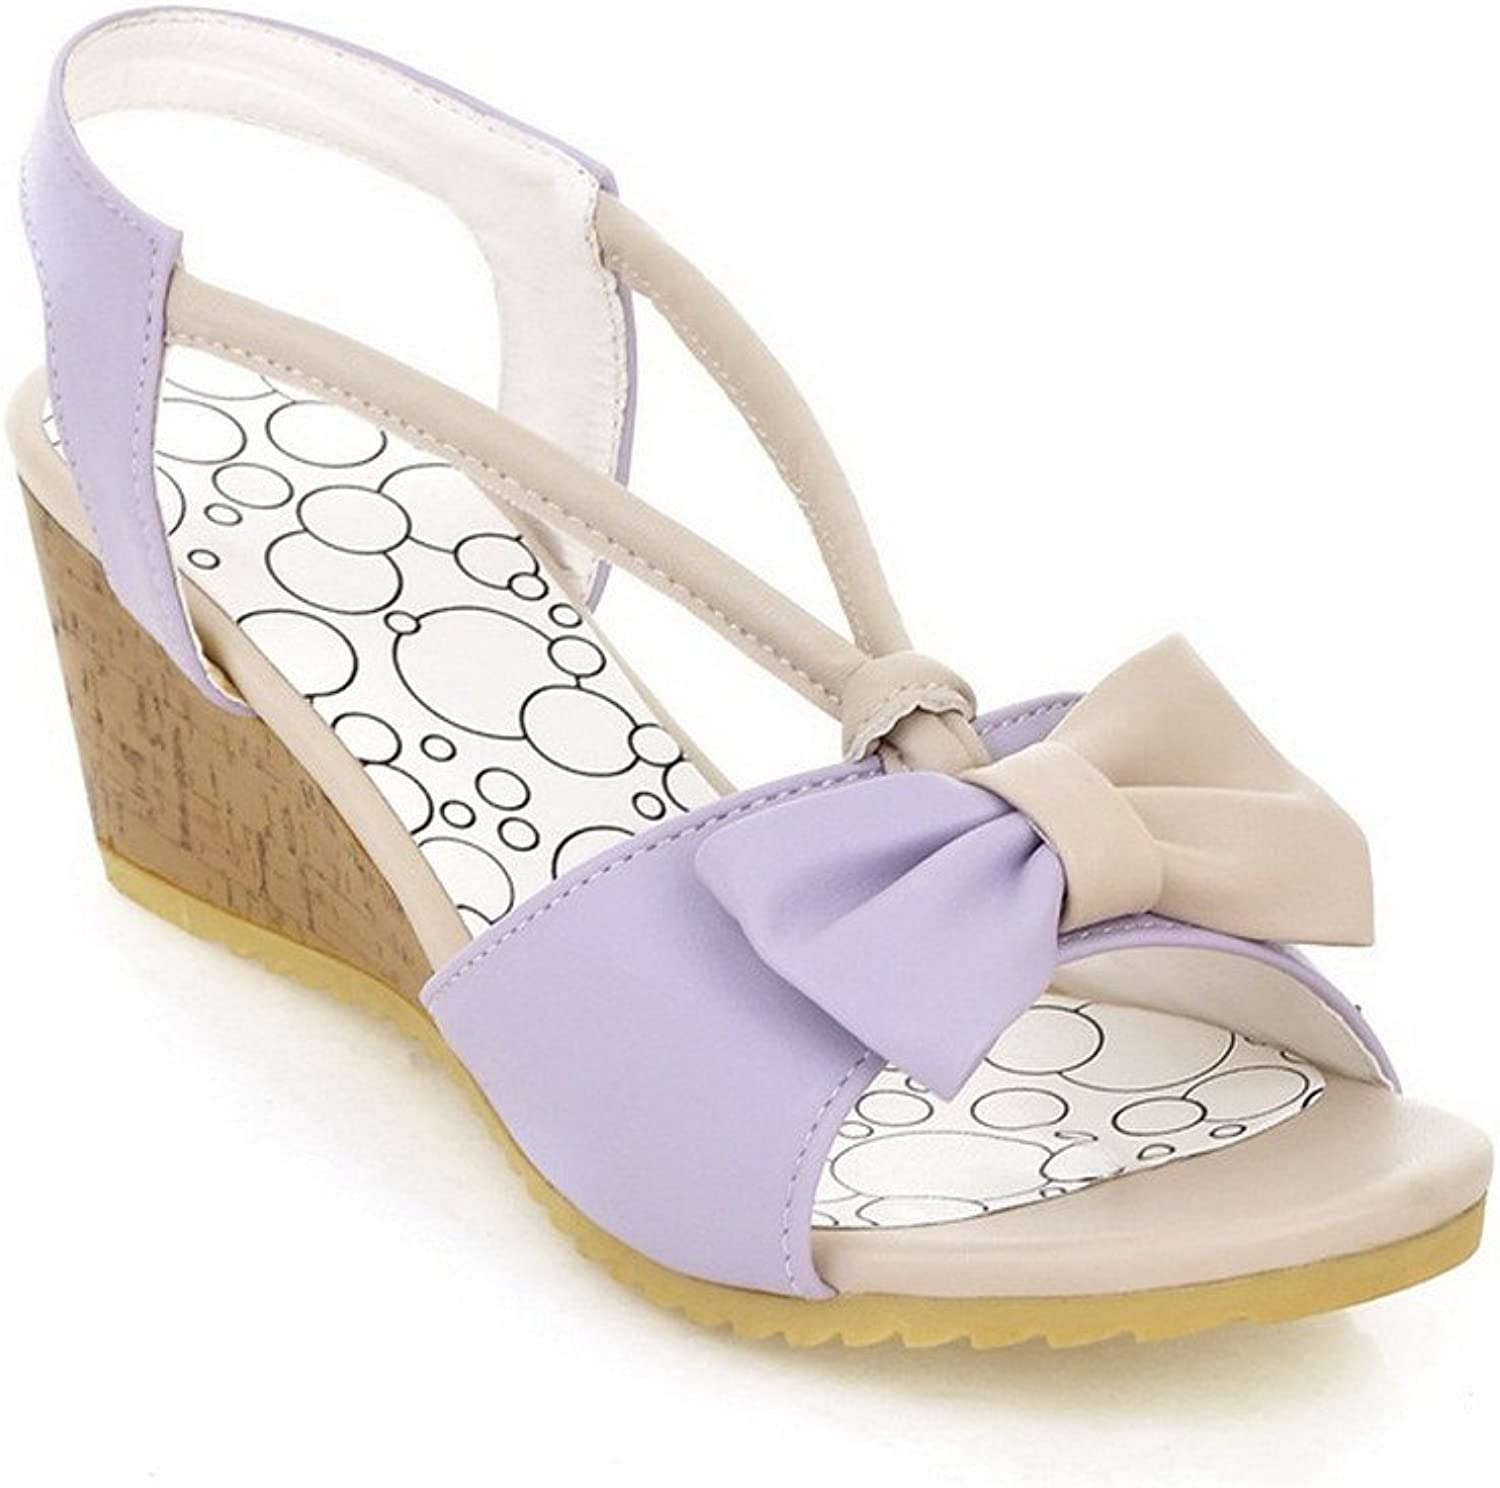 AmoonyFashion Womens Open Toe Mid Heel Wedge Soft Material PU Solid Sandals with Bowknot, Purple, 7.5 B(M) US